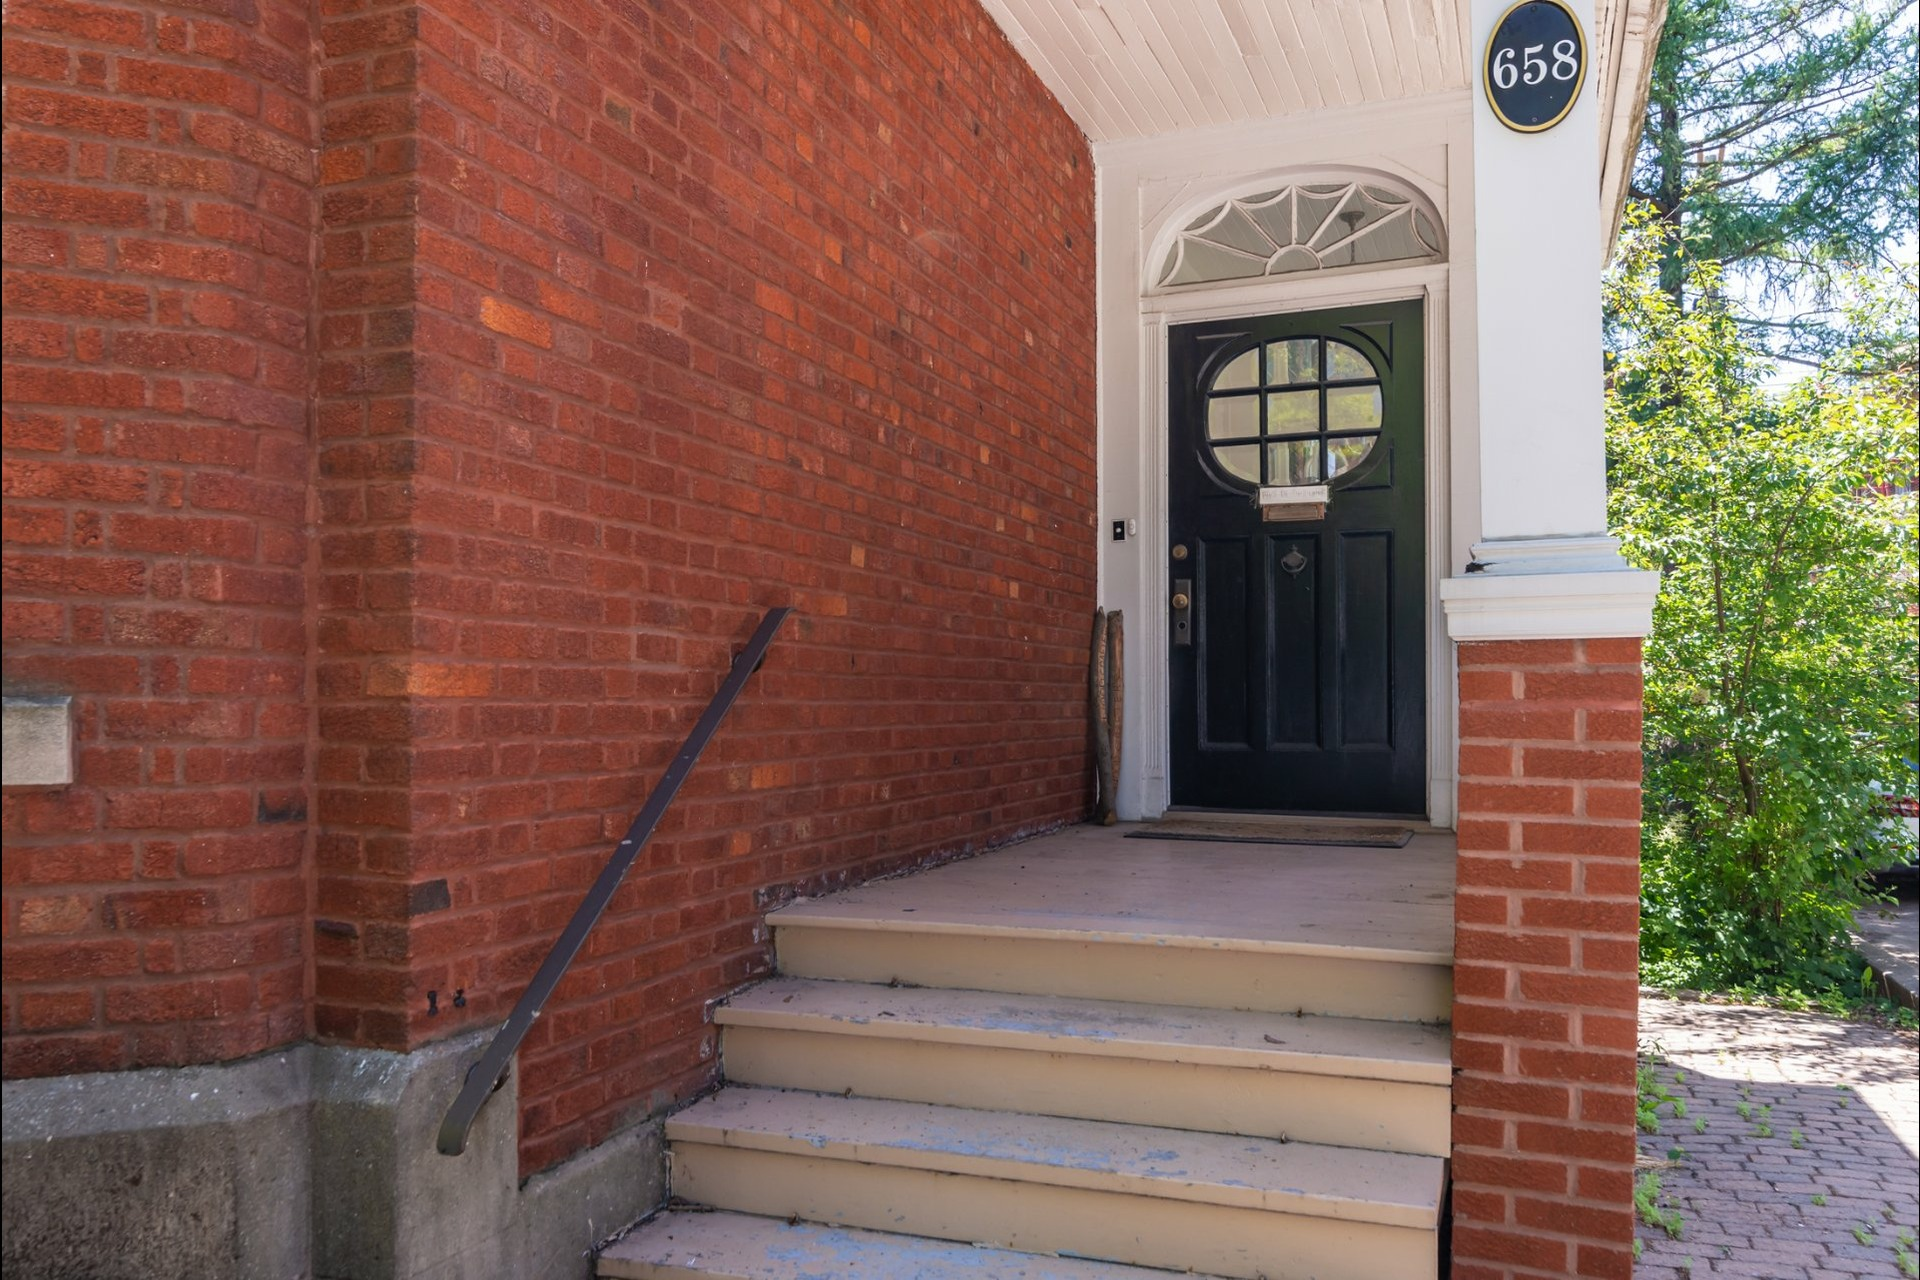 image 2 - House For rent Westmount - 8 rooms